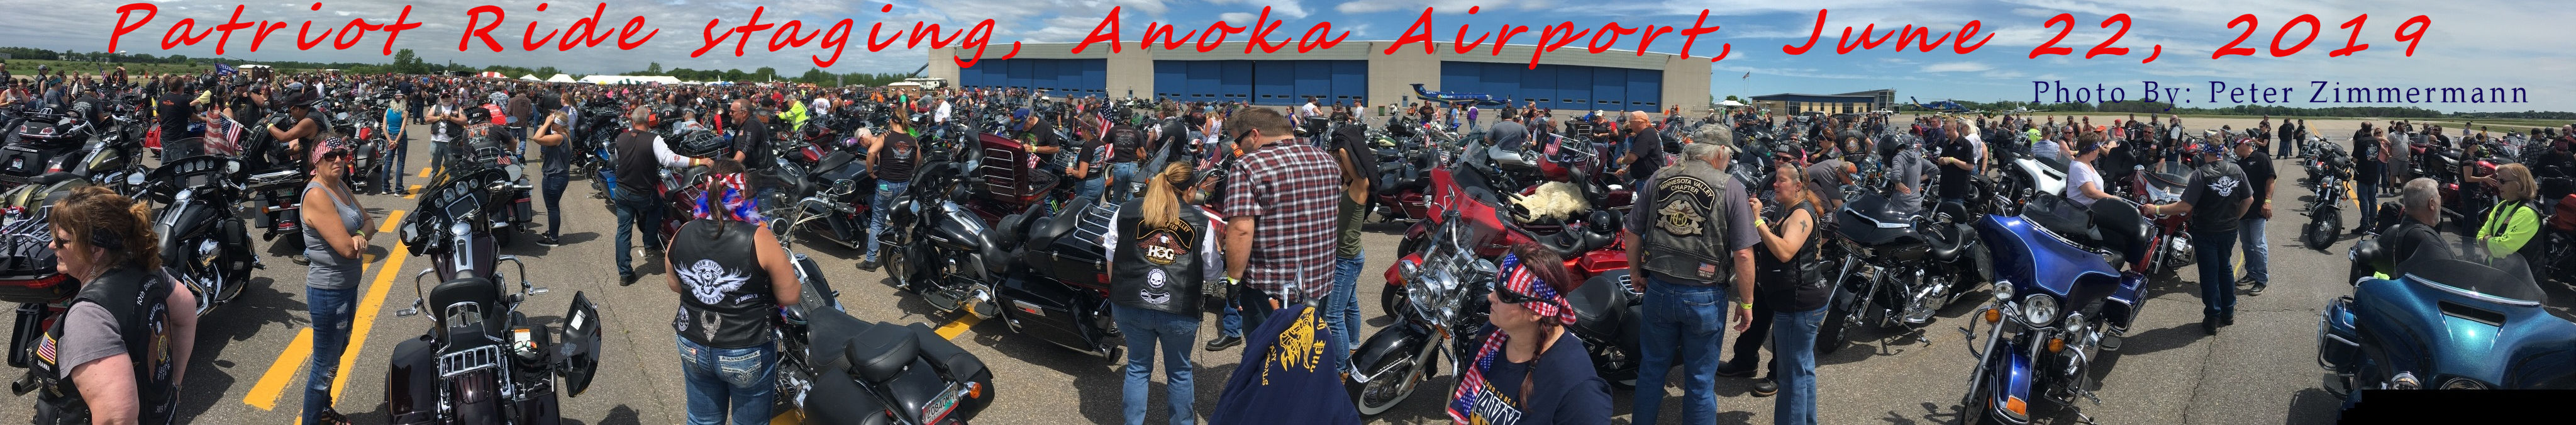 Patriot Ride Staging, Anoka Airport, June 22, 2019